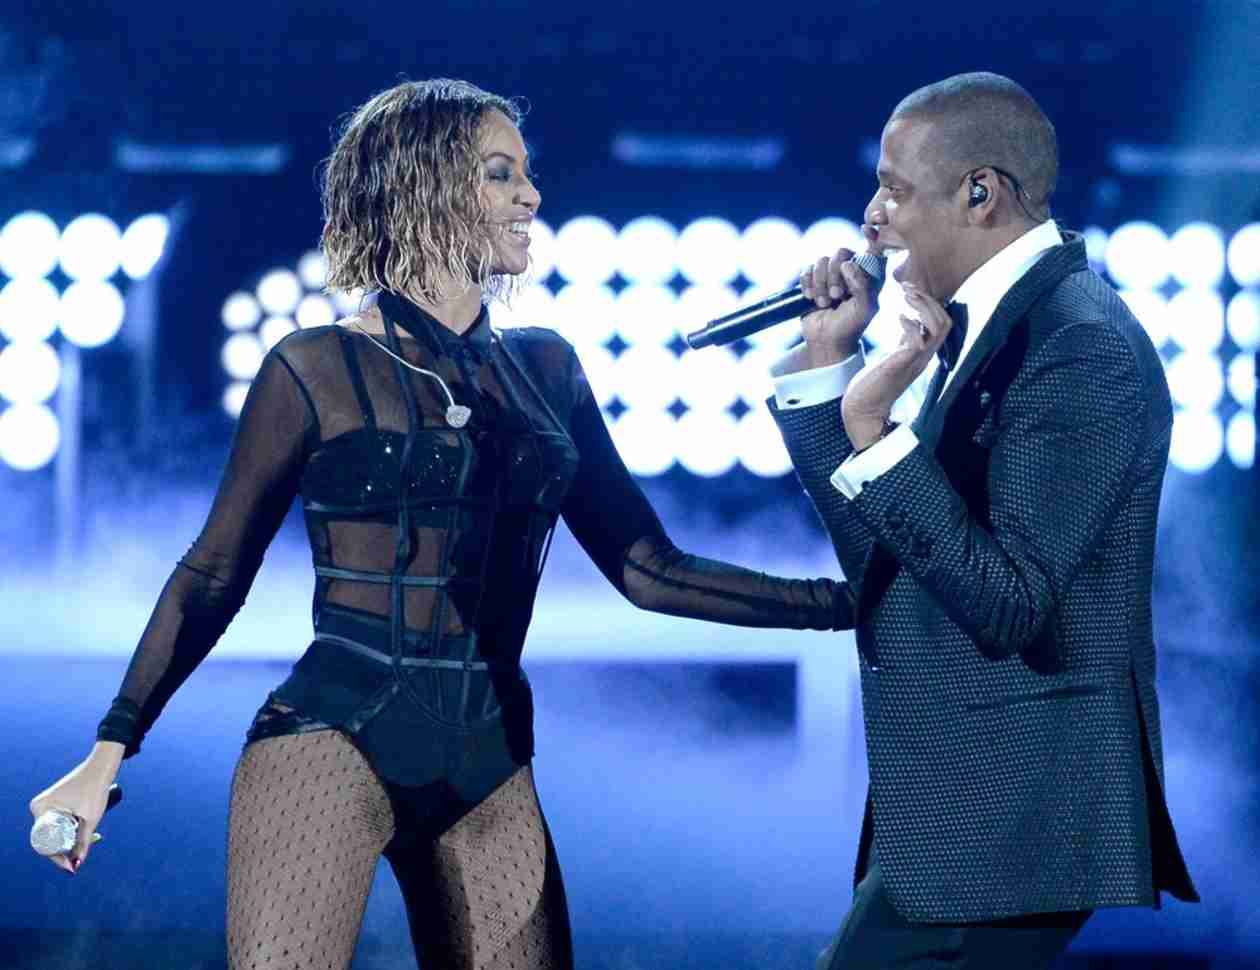 """Beyoncé Grinds on Jay Z During Sexy """"Drunk in Love"""" Performance at 2014 Grammys (VIDEO)"""